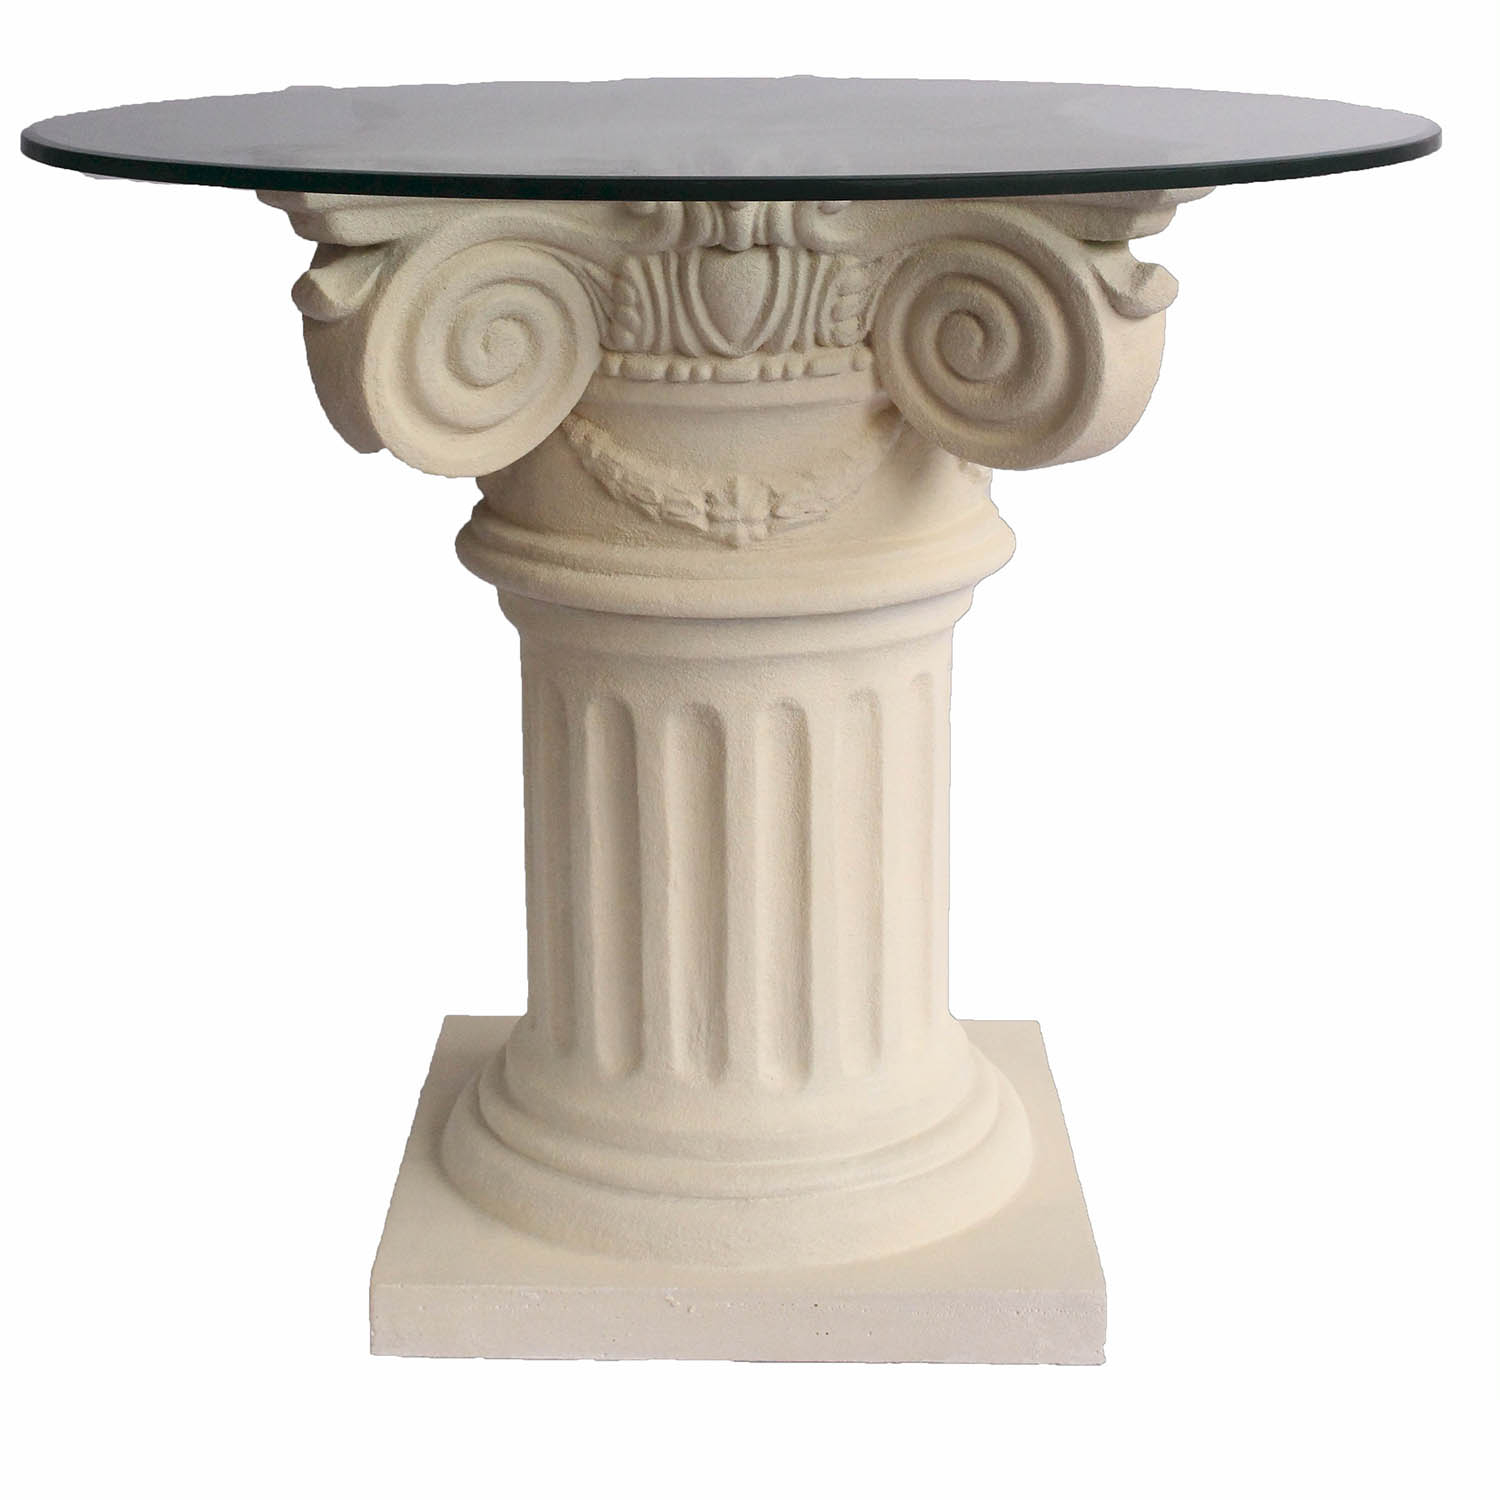 Anderson Teak | Florence Cast Limestone Dining Glass Top Intended For Most Up To Date Aztec Round Pedestal Dining Tables (View 17 of 25)